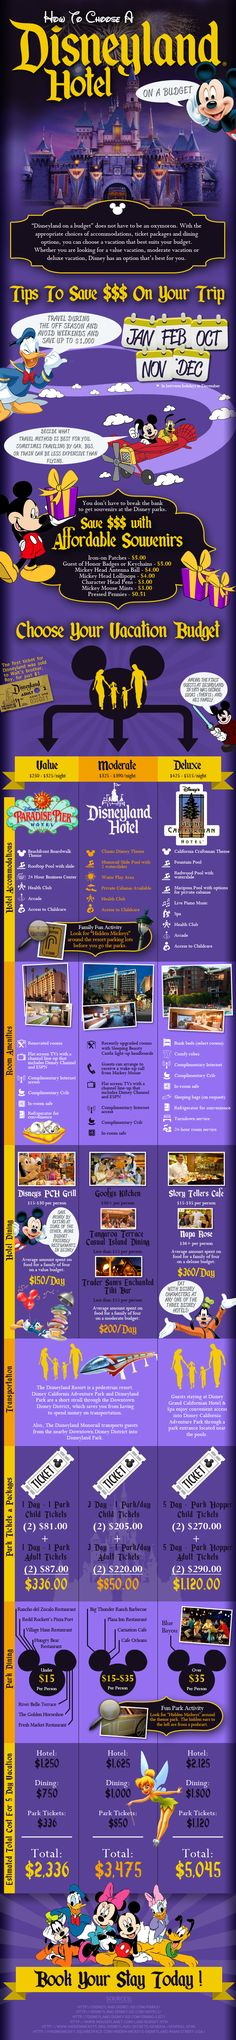 Choosing a Disneyland Hotel on a Budgget [Infographic] | Hotels US Travel | Hotels.com